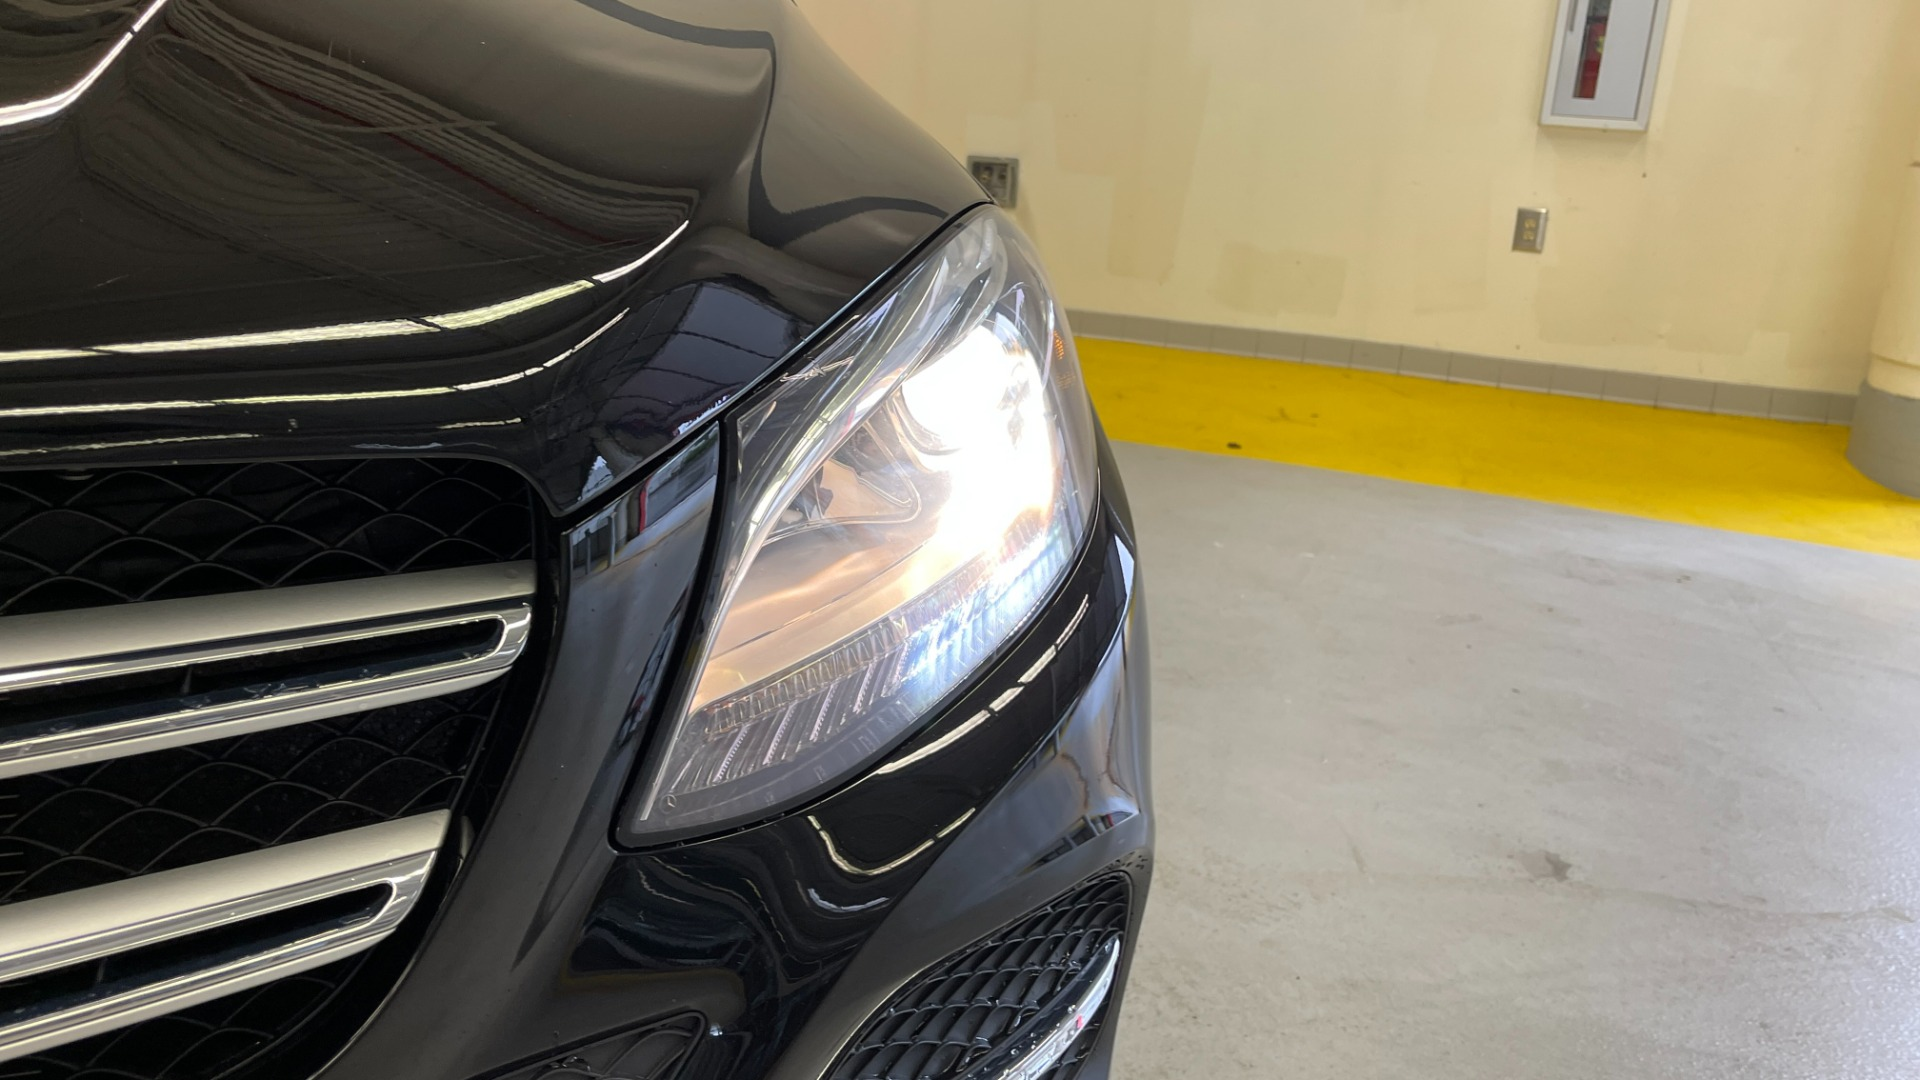 Used 2018 Mercedes-Benz GLE 350 4MATIC PREMIUM / NAV / PARK PILOT / BSA / H/K SND / SURROUND VIEW for sale $40,995 at Formula Imports in Charlotte NC 28227 21